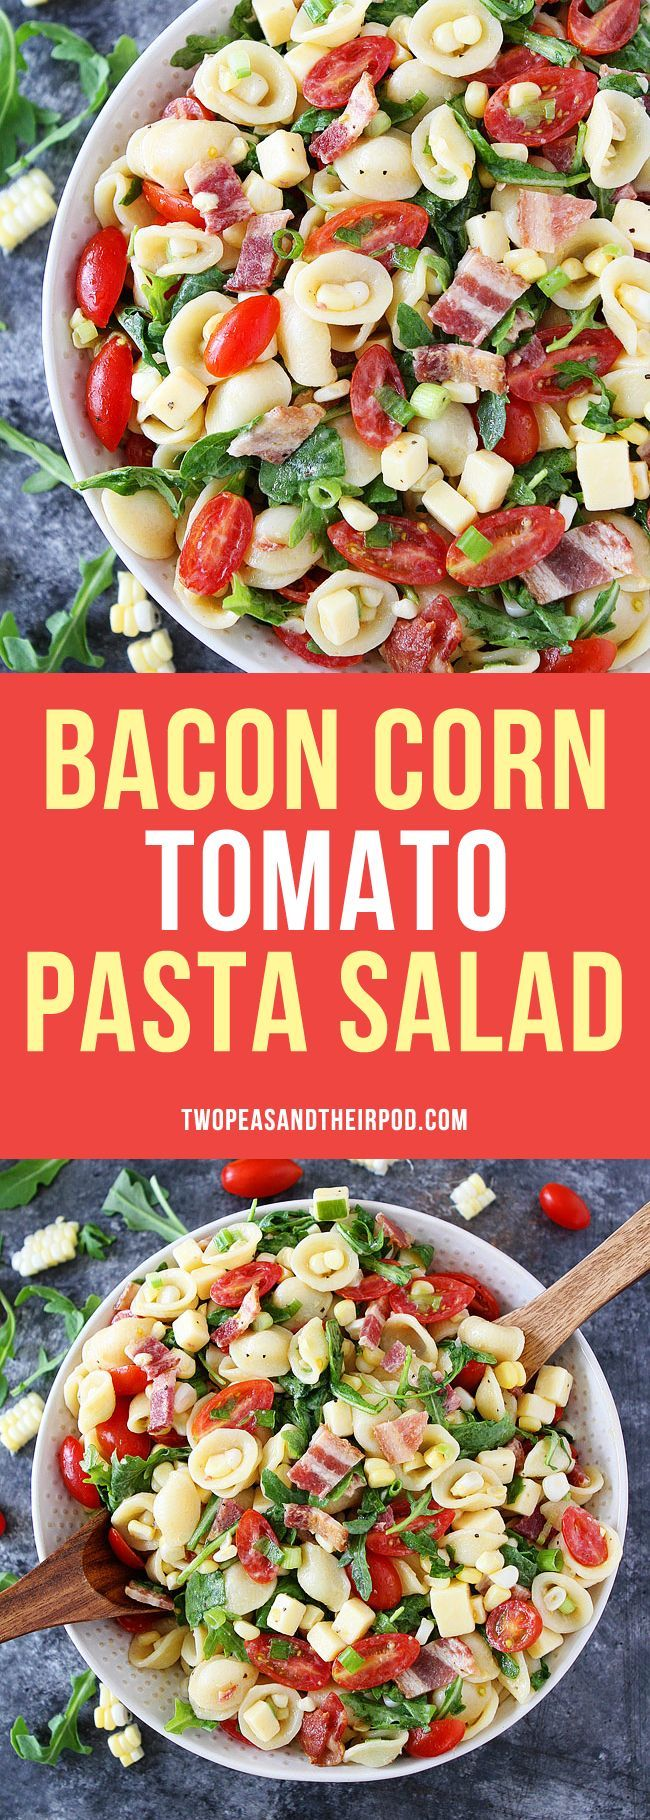 Bacon, Corn, and Tomato Pasta Salad with arugula and cheese is the perfect summer pasta salad. It is perfect for picnics, potlucks, BBQ's or everyday dinner! Everyone loves this easy pasta salad!